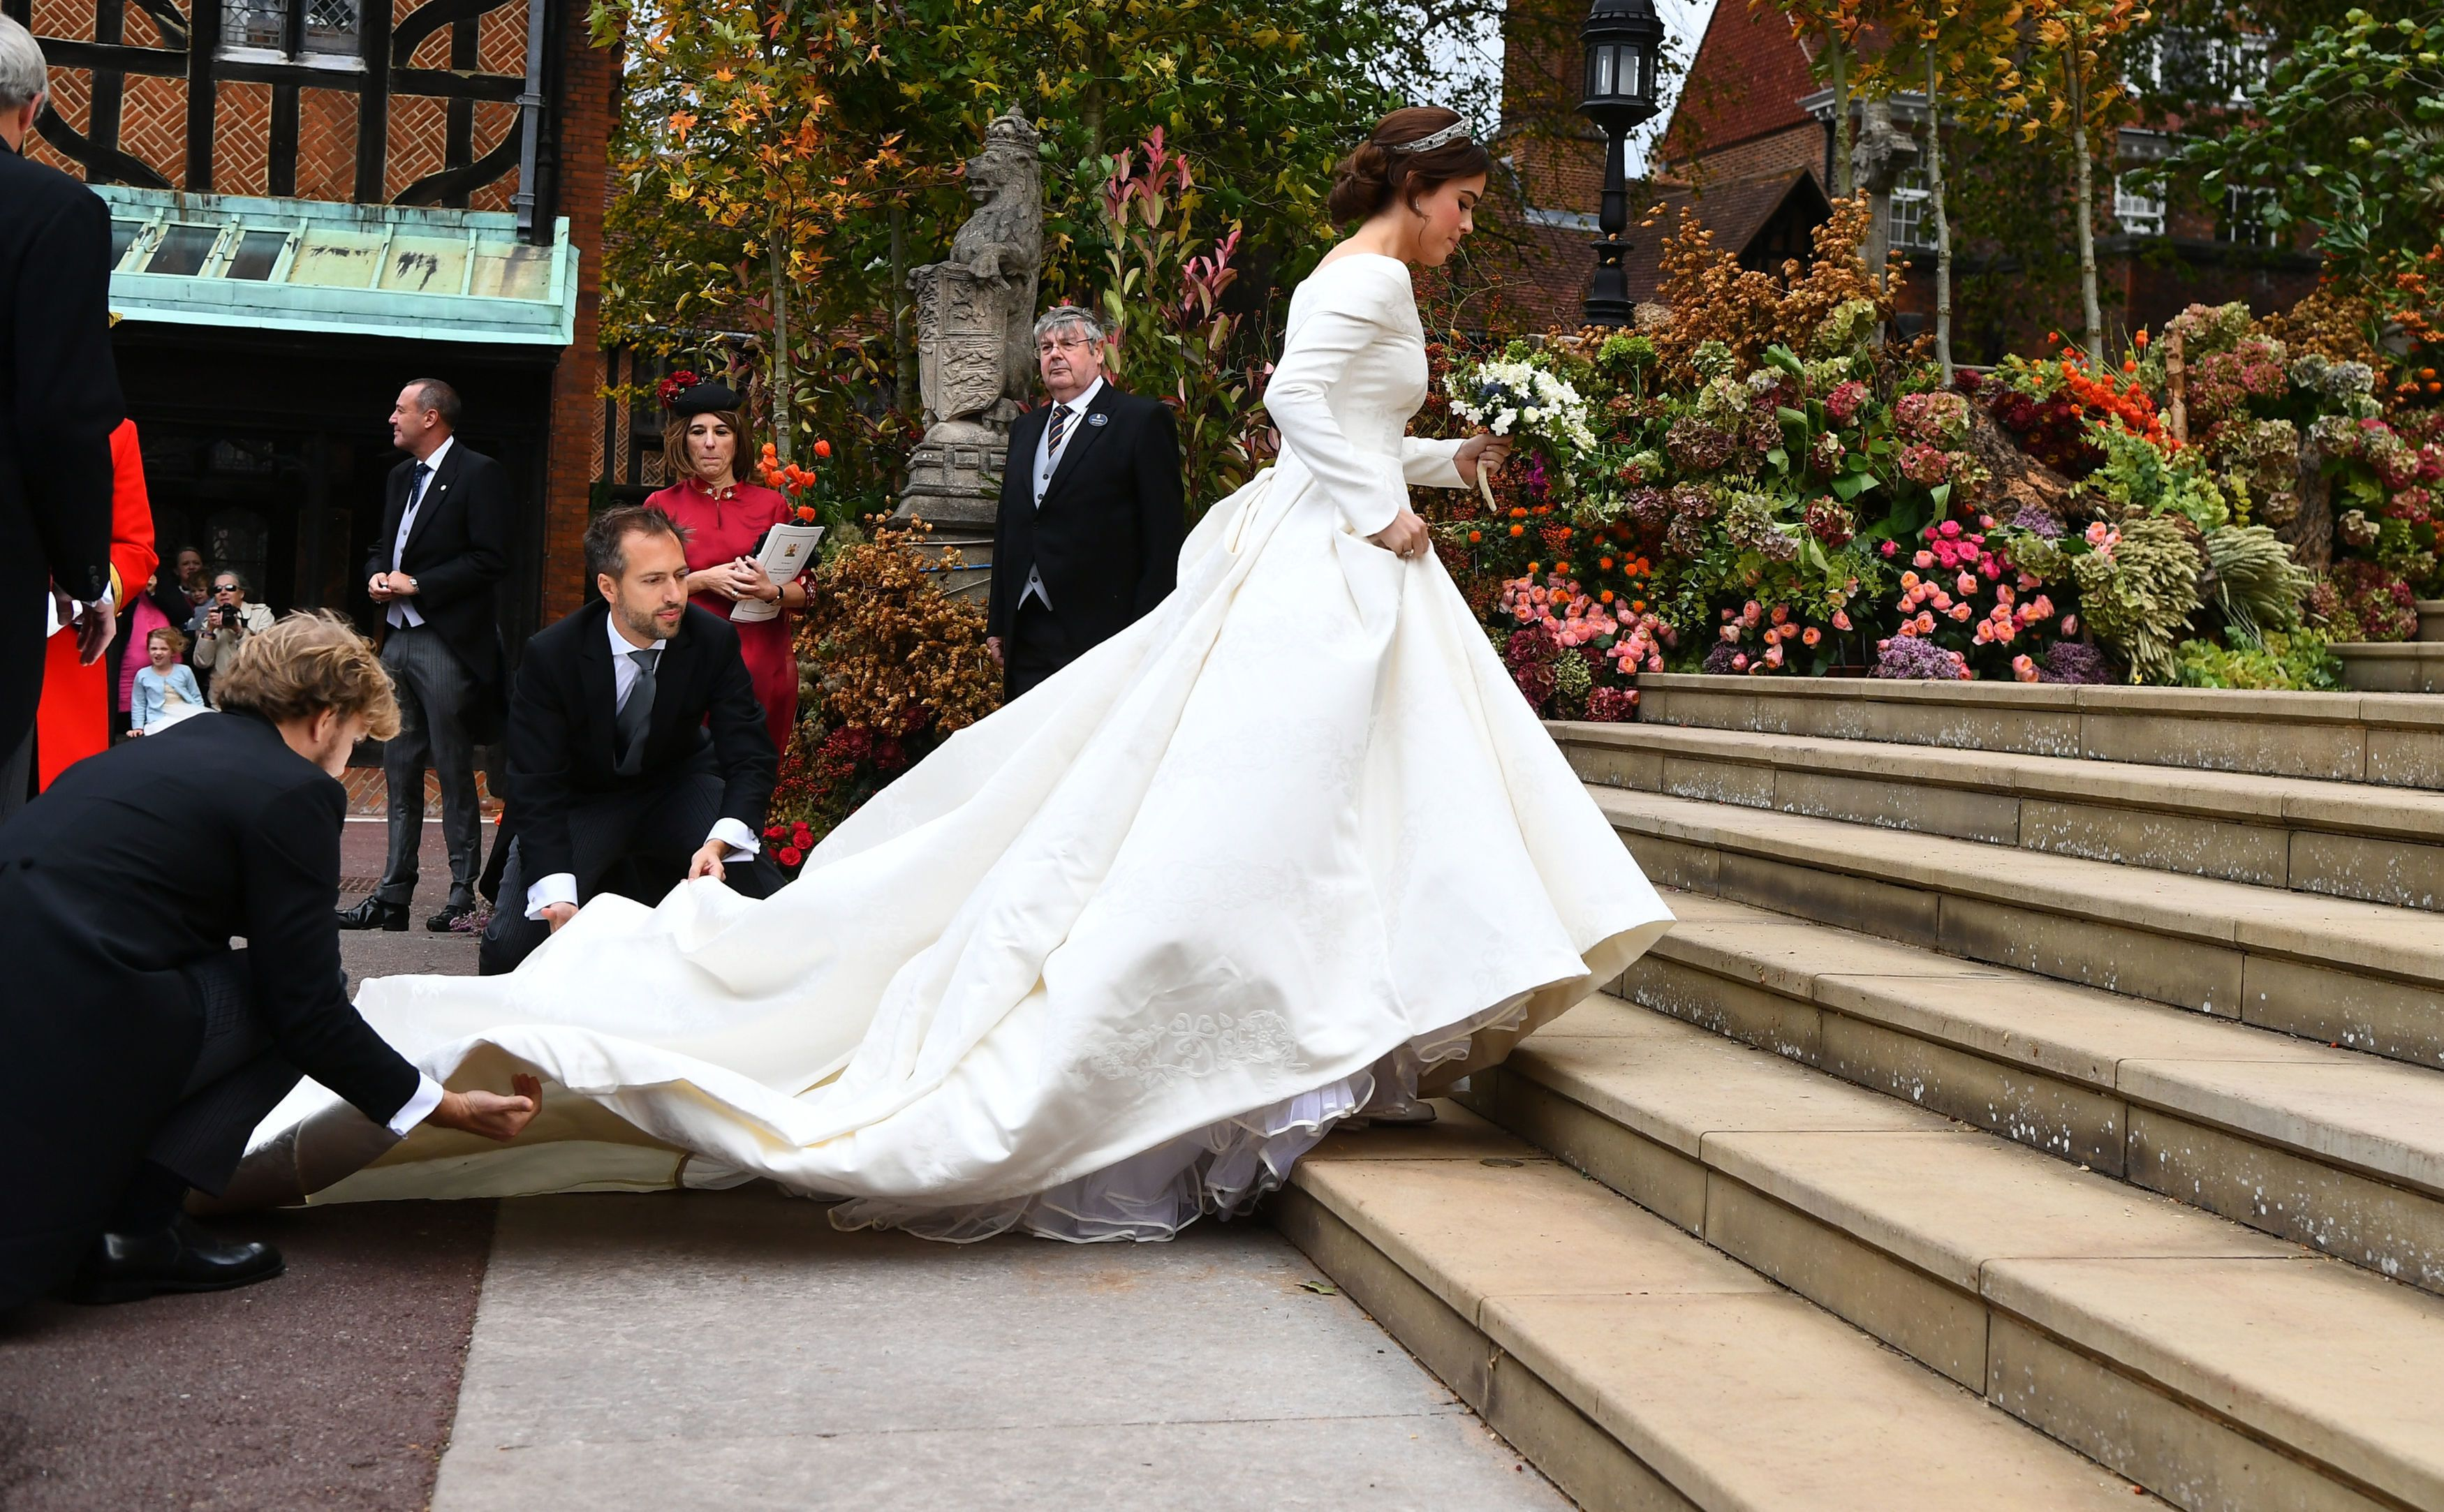 WINDSOR, ENGLAND - OCTOBER 12: Princess Eugenie arrives for her wedding to Jack Brooksbank at St George's Chapel in Windsor Castle on October 12, 2018 in Windsor, England. (Photo by Victoria Jones - WPA Pool/Getty Images)